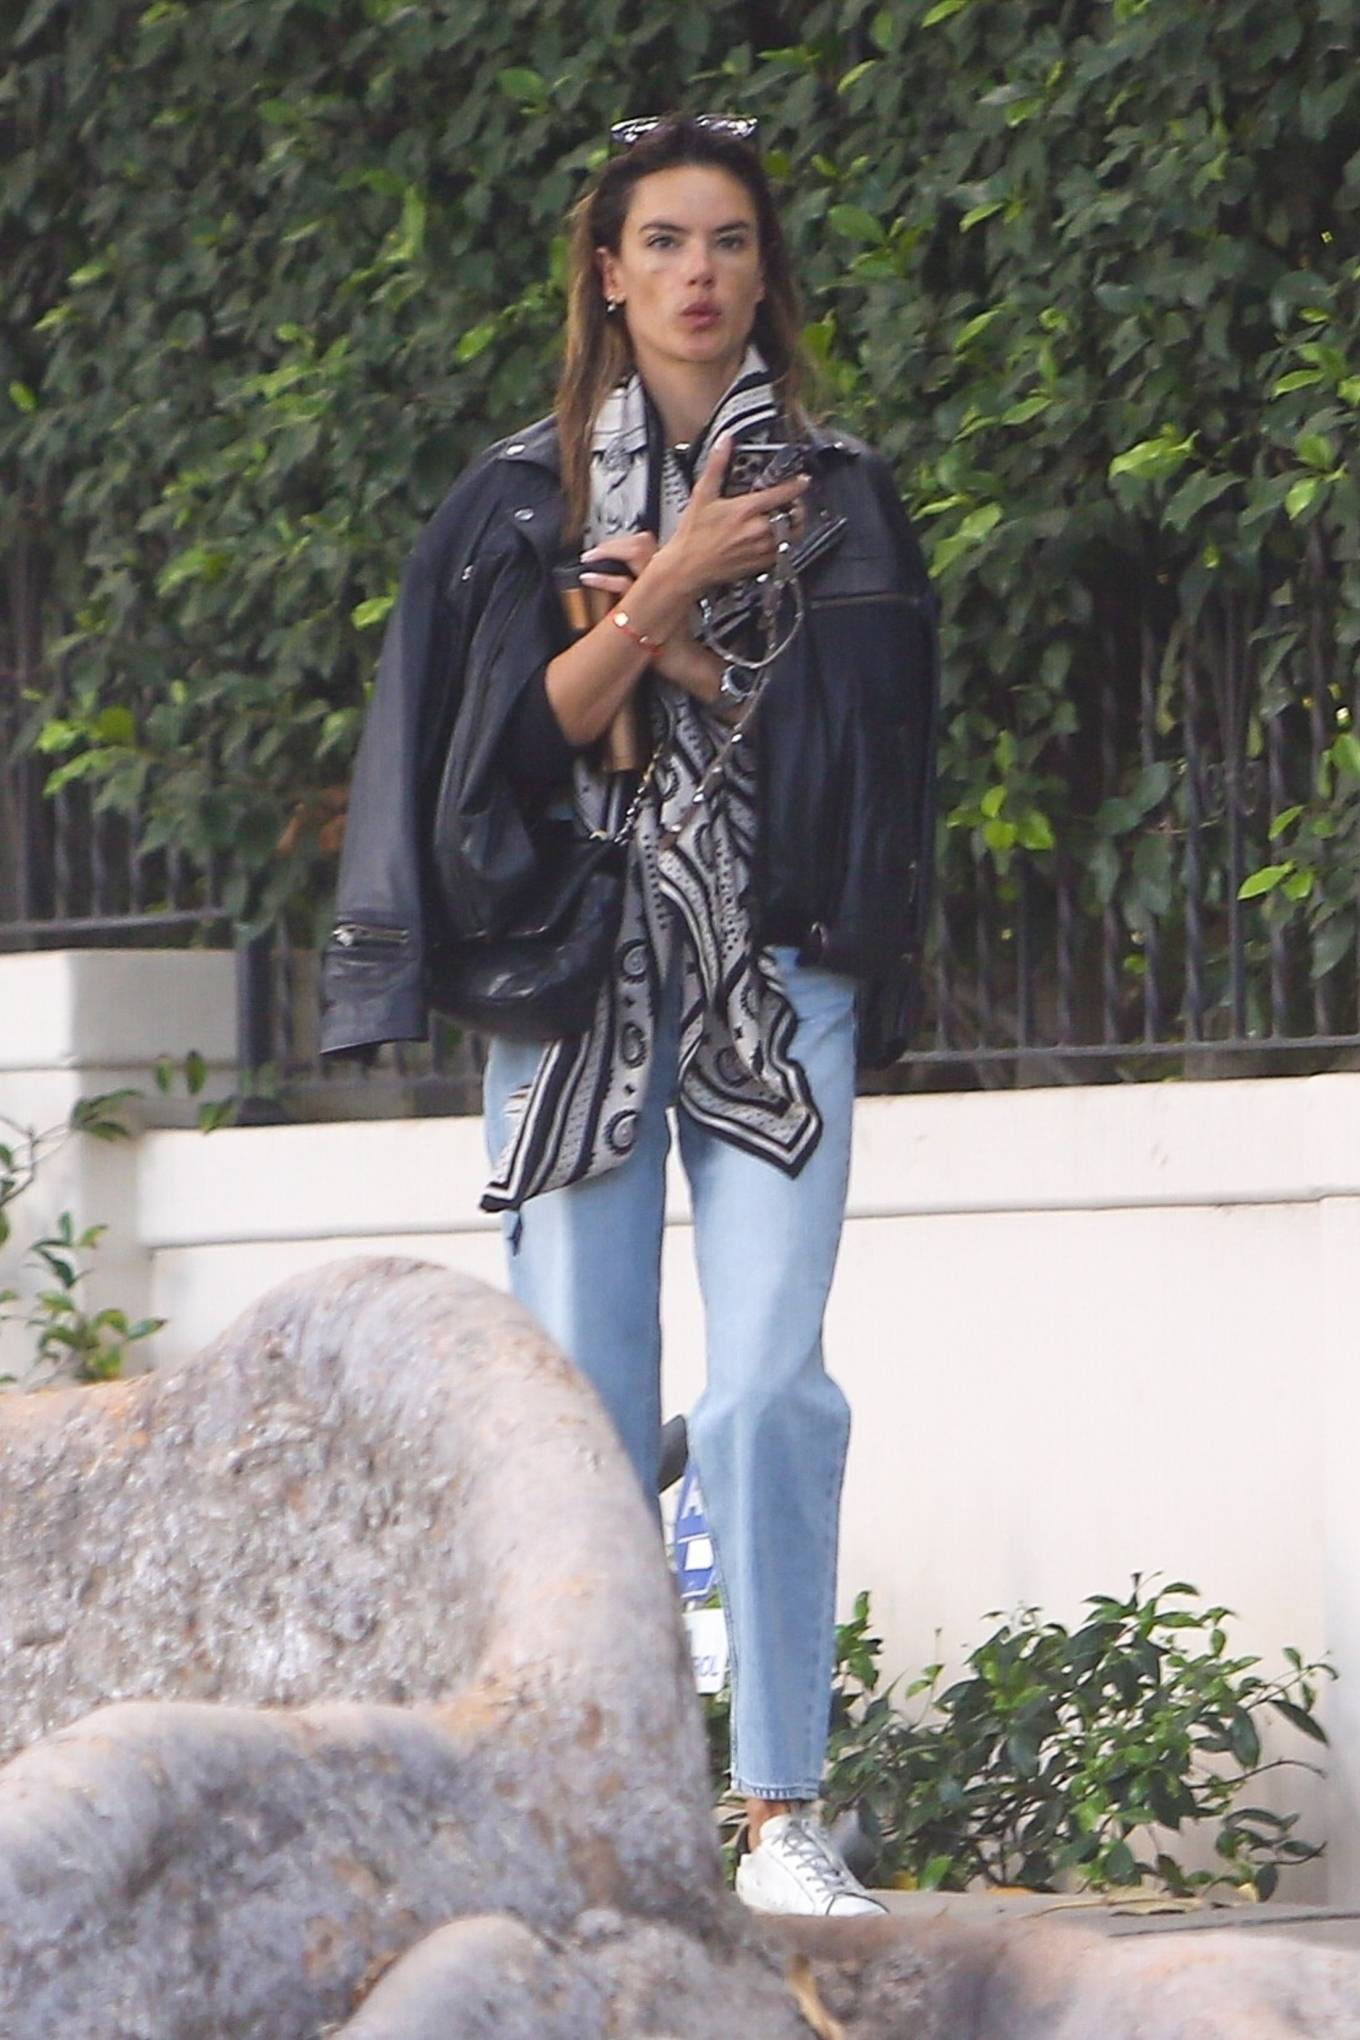 Alessandra Ambrosio donning embroidered white leather lace-up sneakers by Golden Goose Deluxe Brand with flat heel